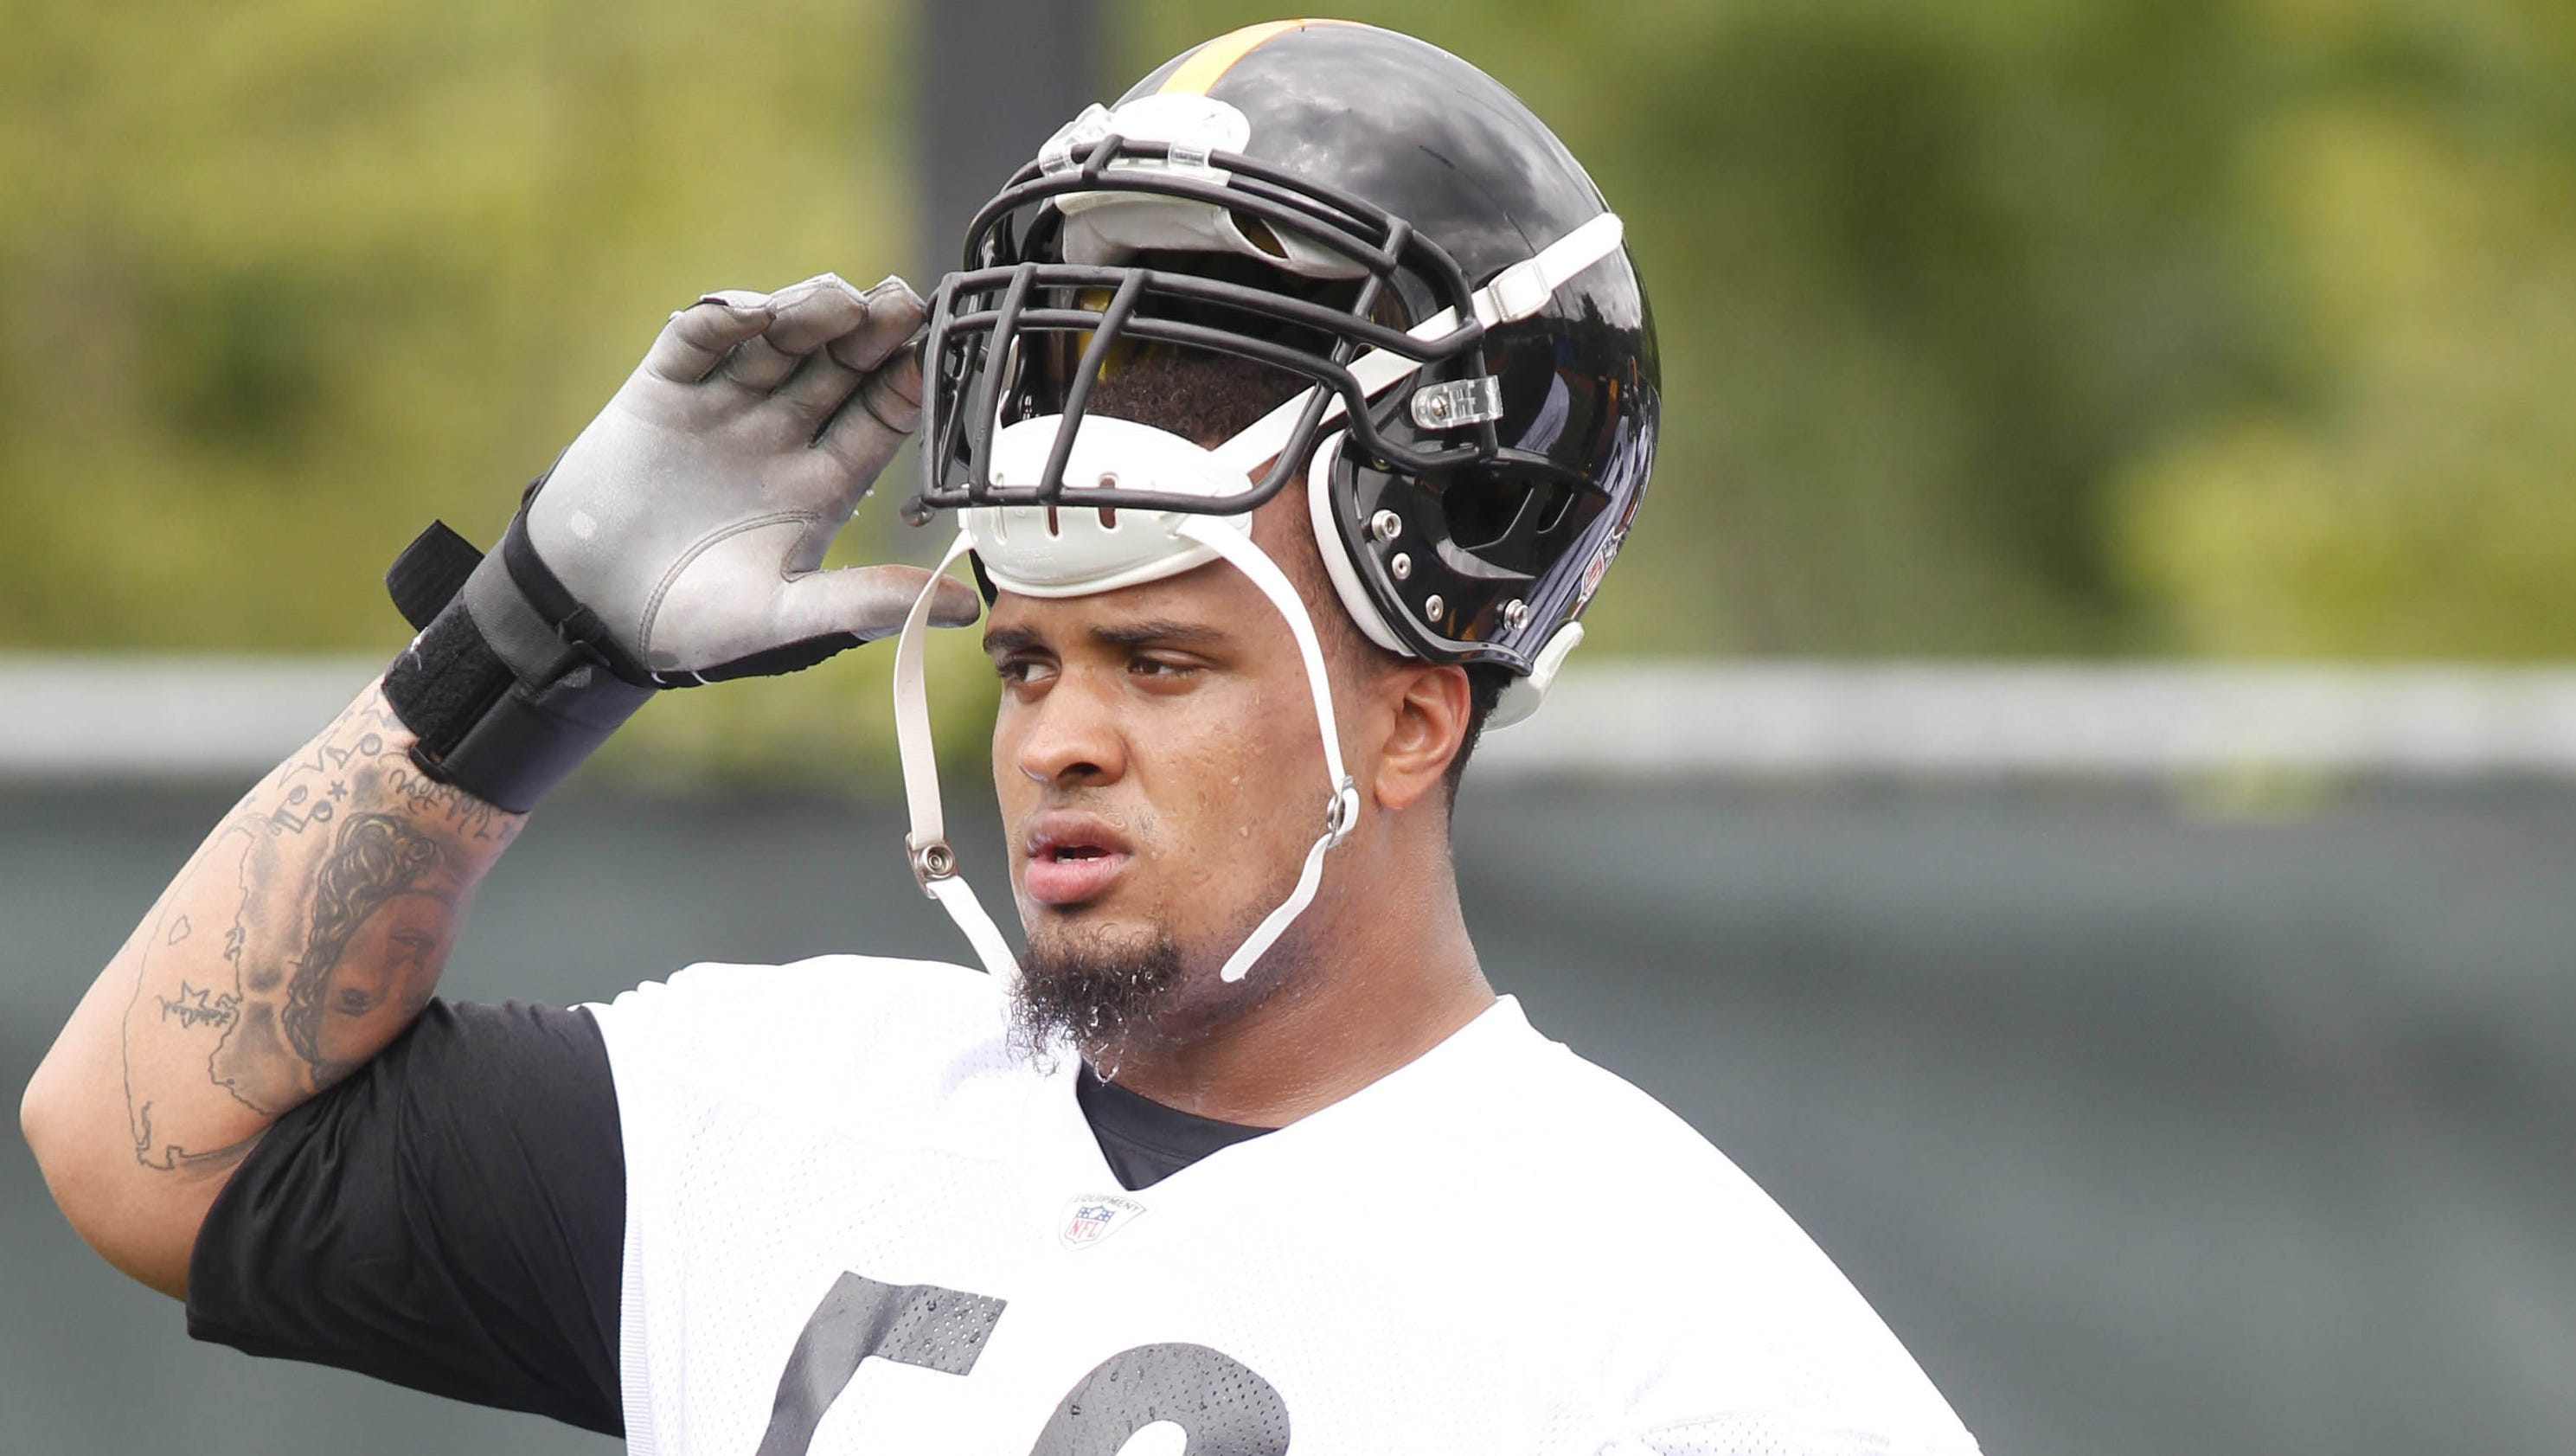 Steelers Maurkice Pouncey relieved not surprised assault charges